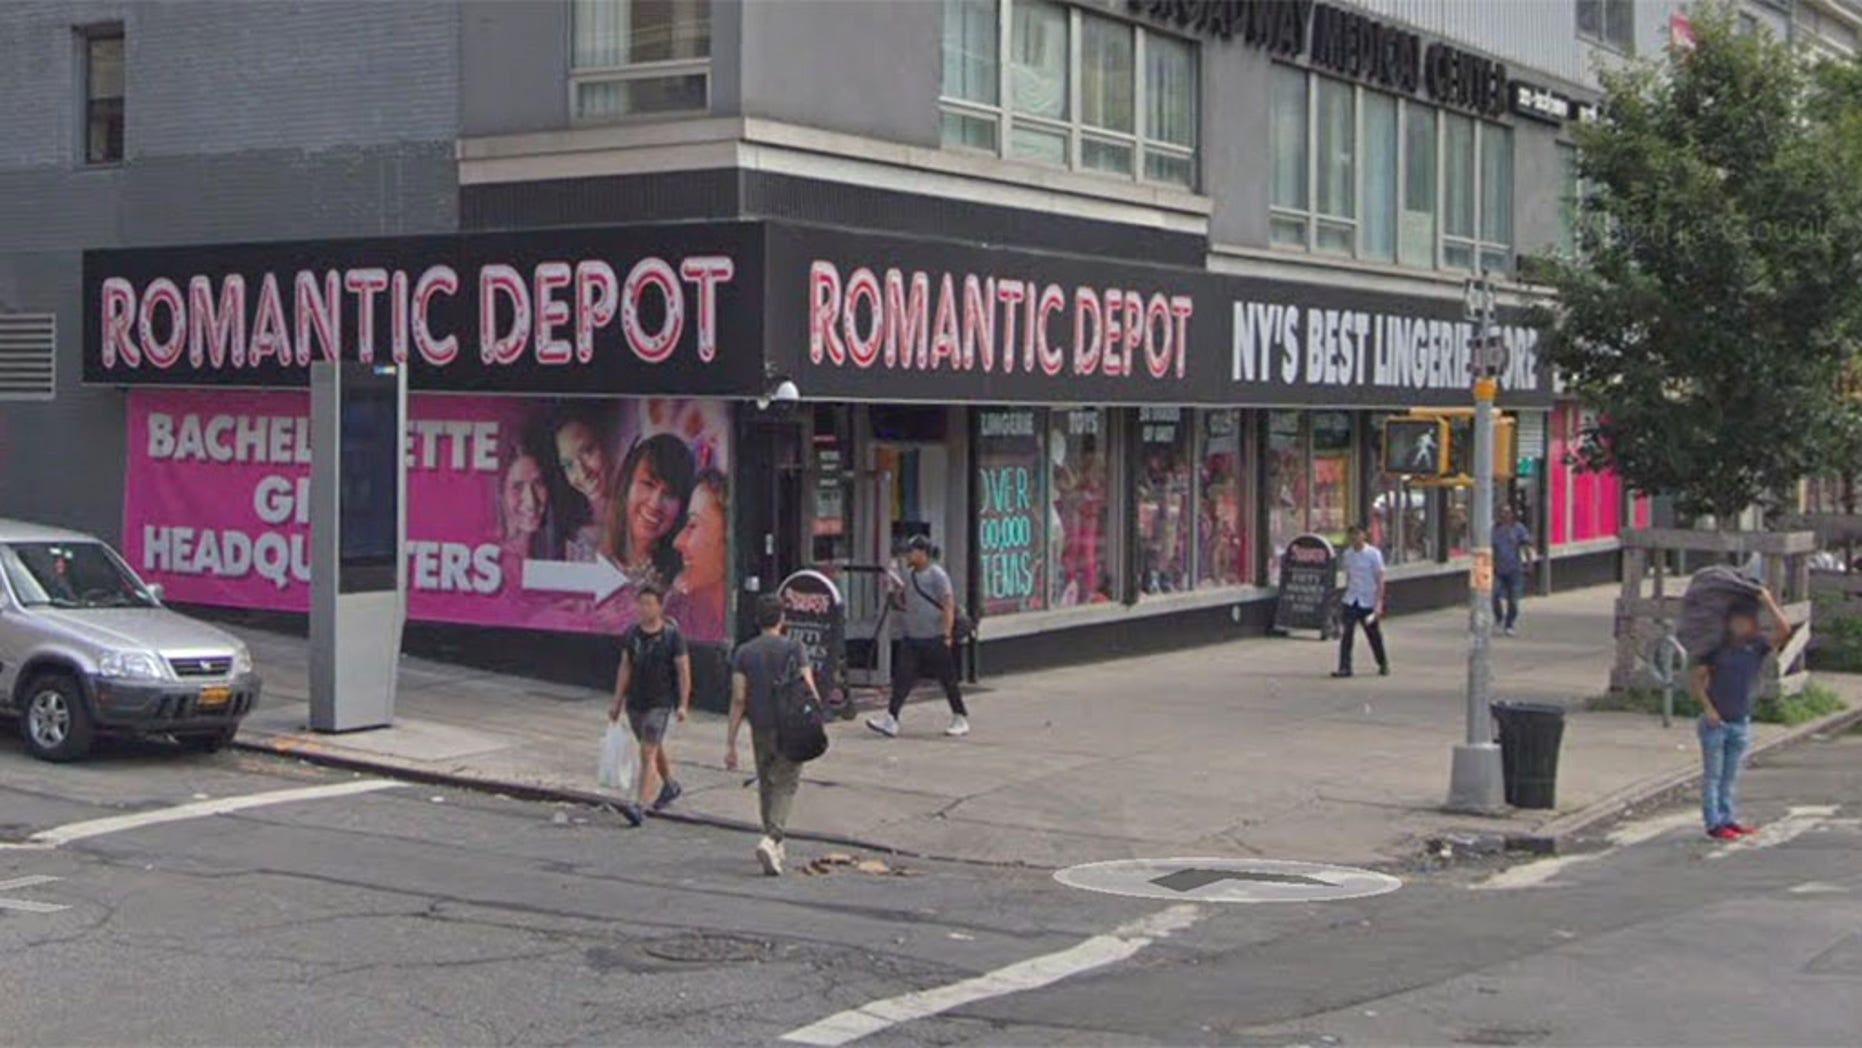 The owner of Harlem's Romantic Depot said a man who hated former President Barack Obama attacked a mannequin of him in his storefront window.